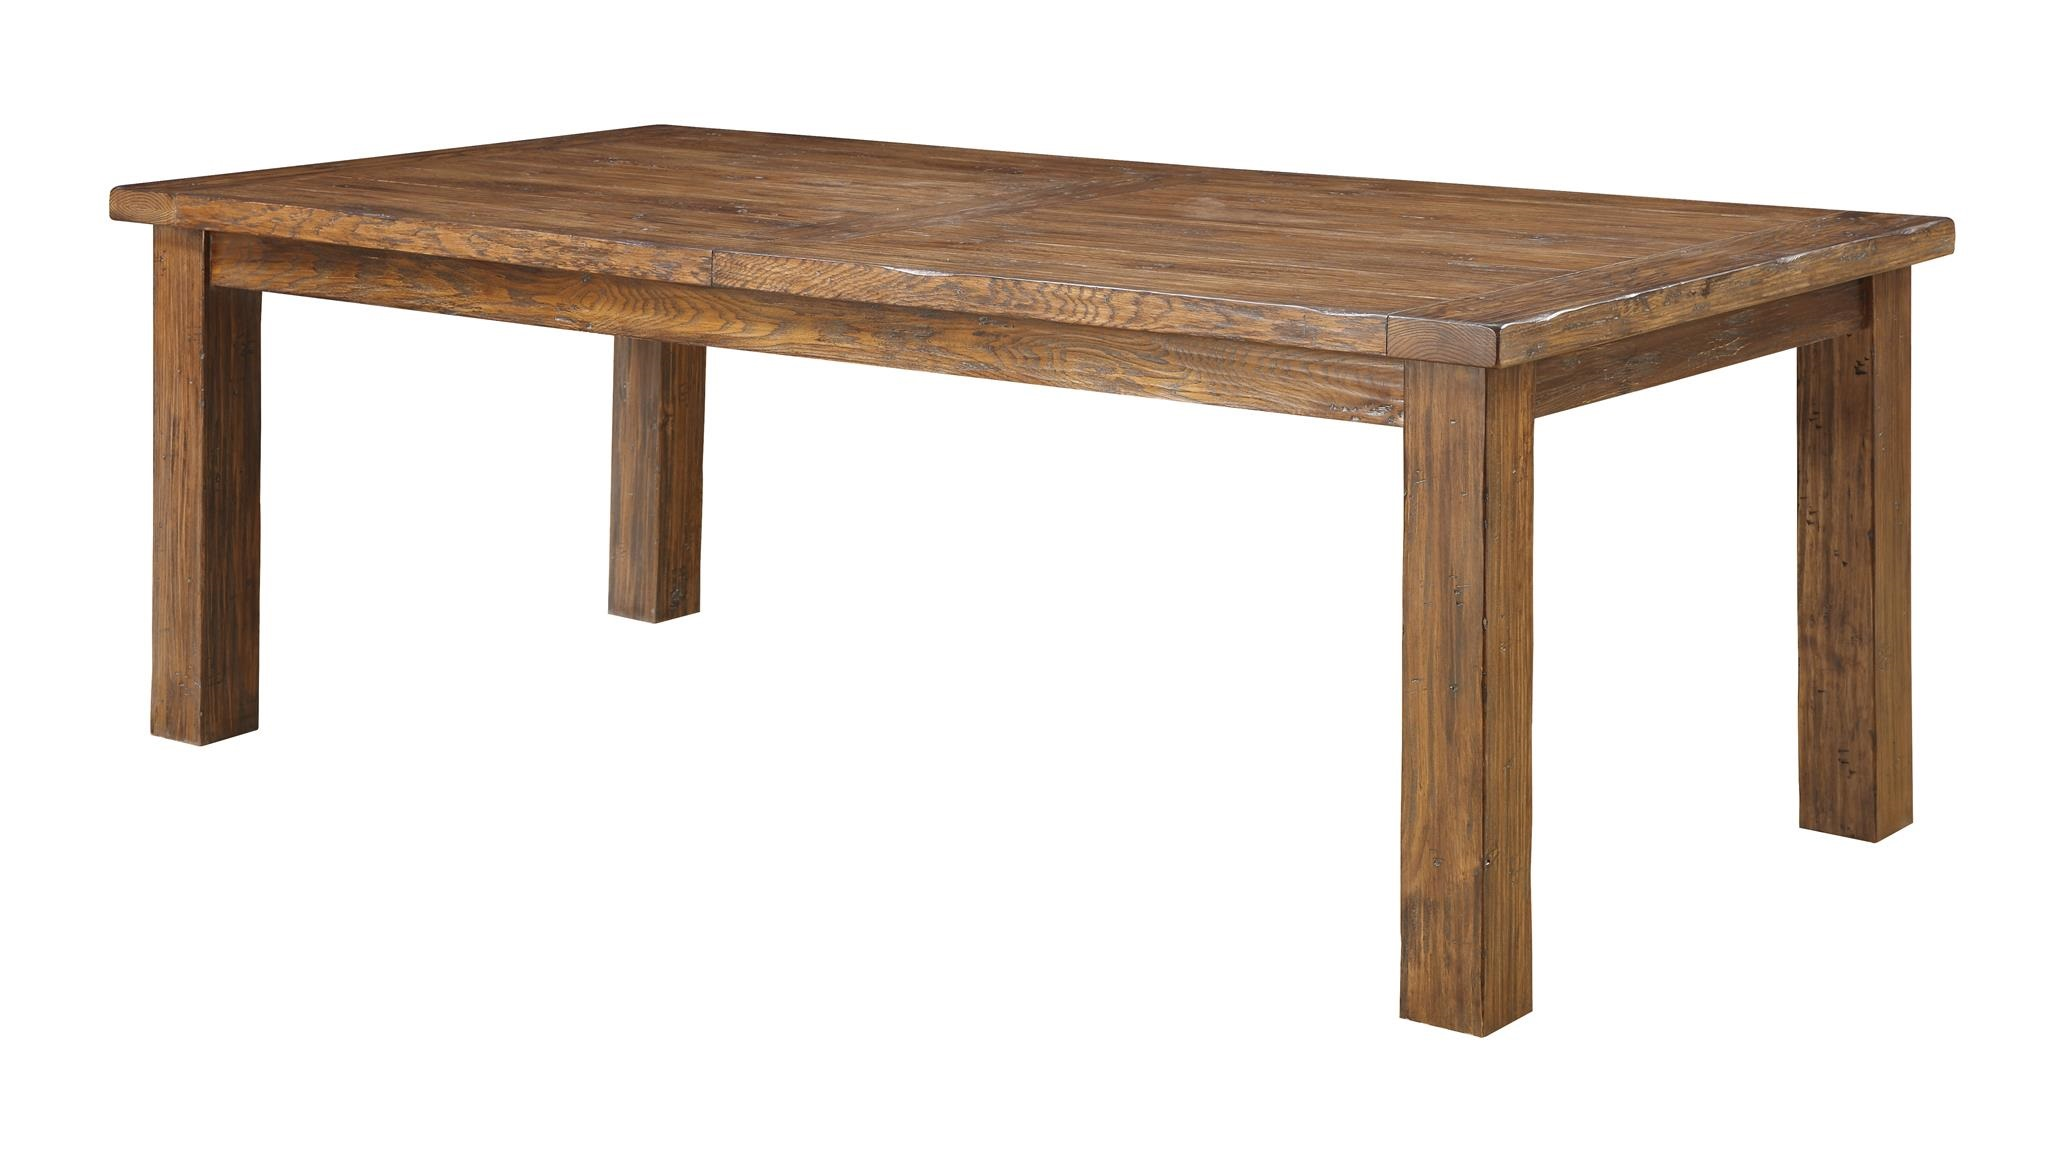 Chambers Creek Dining Table with Butterfly Leaf by Emerald at Northeast Factory Direct